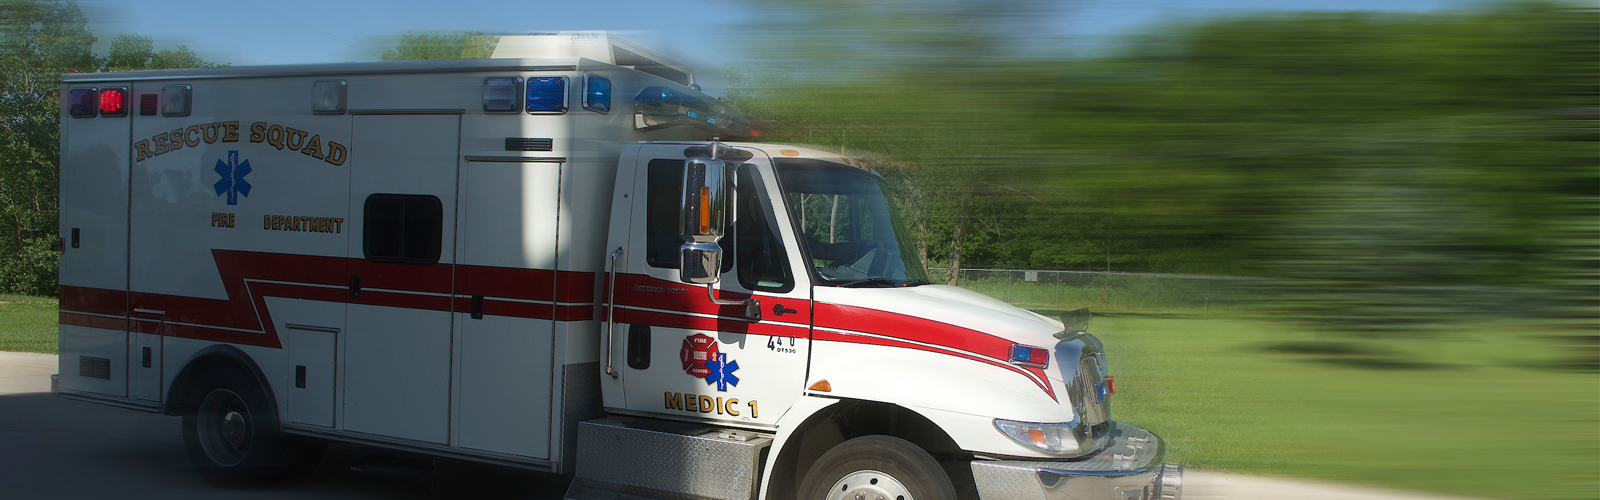 First responder ambulance